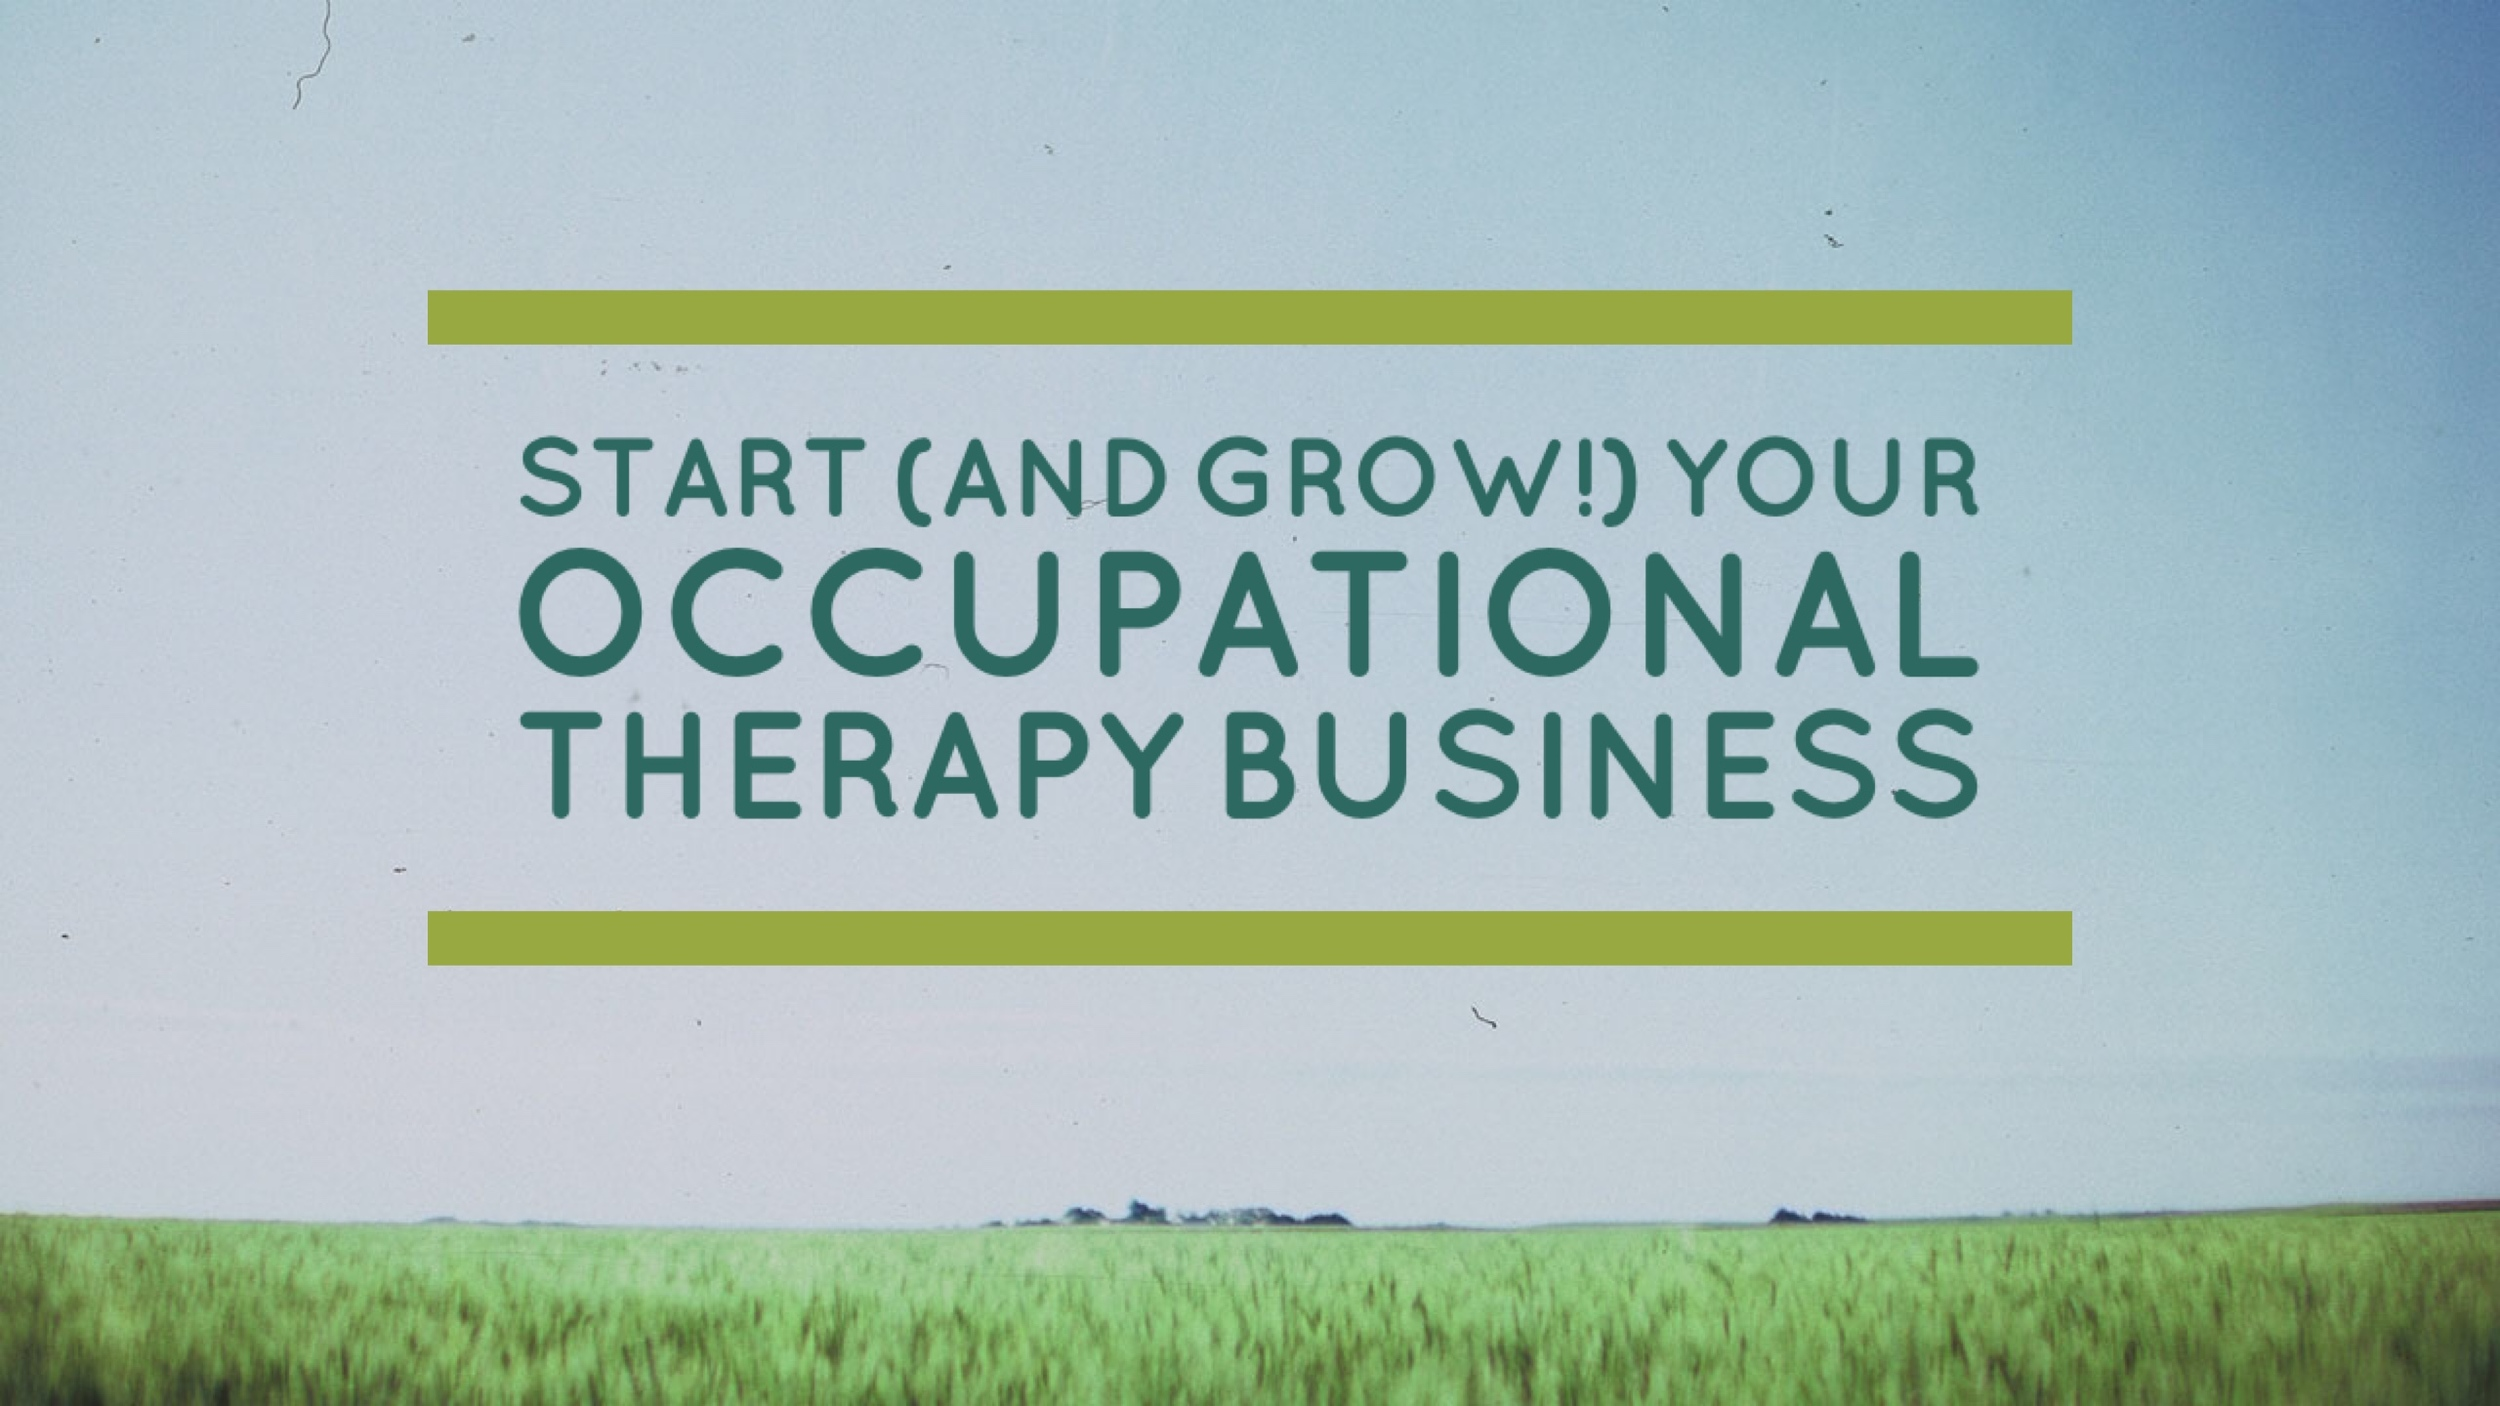 Resources to start and grow your occupational therapy business resources to start and grow your occupational therapy business xflitez Choice Image